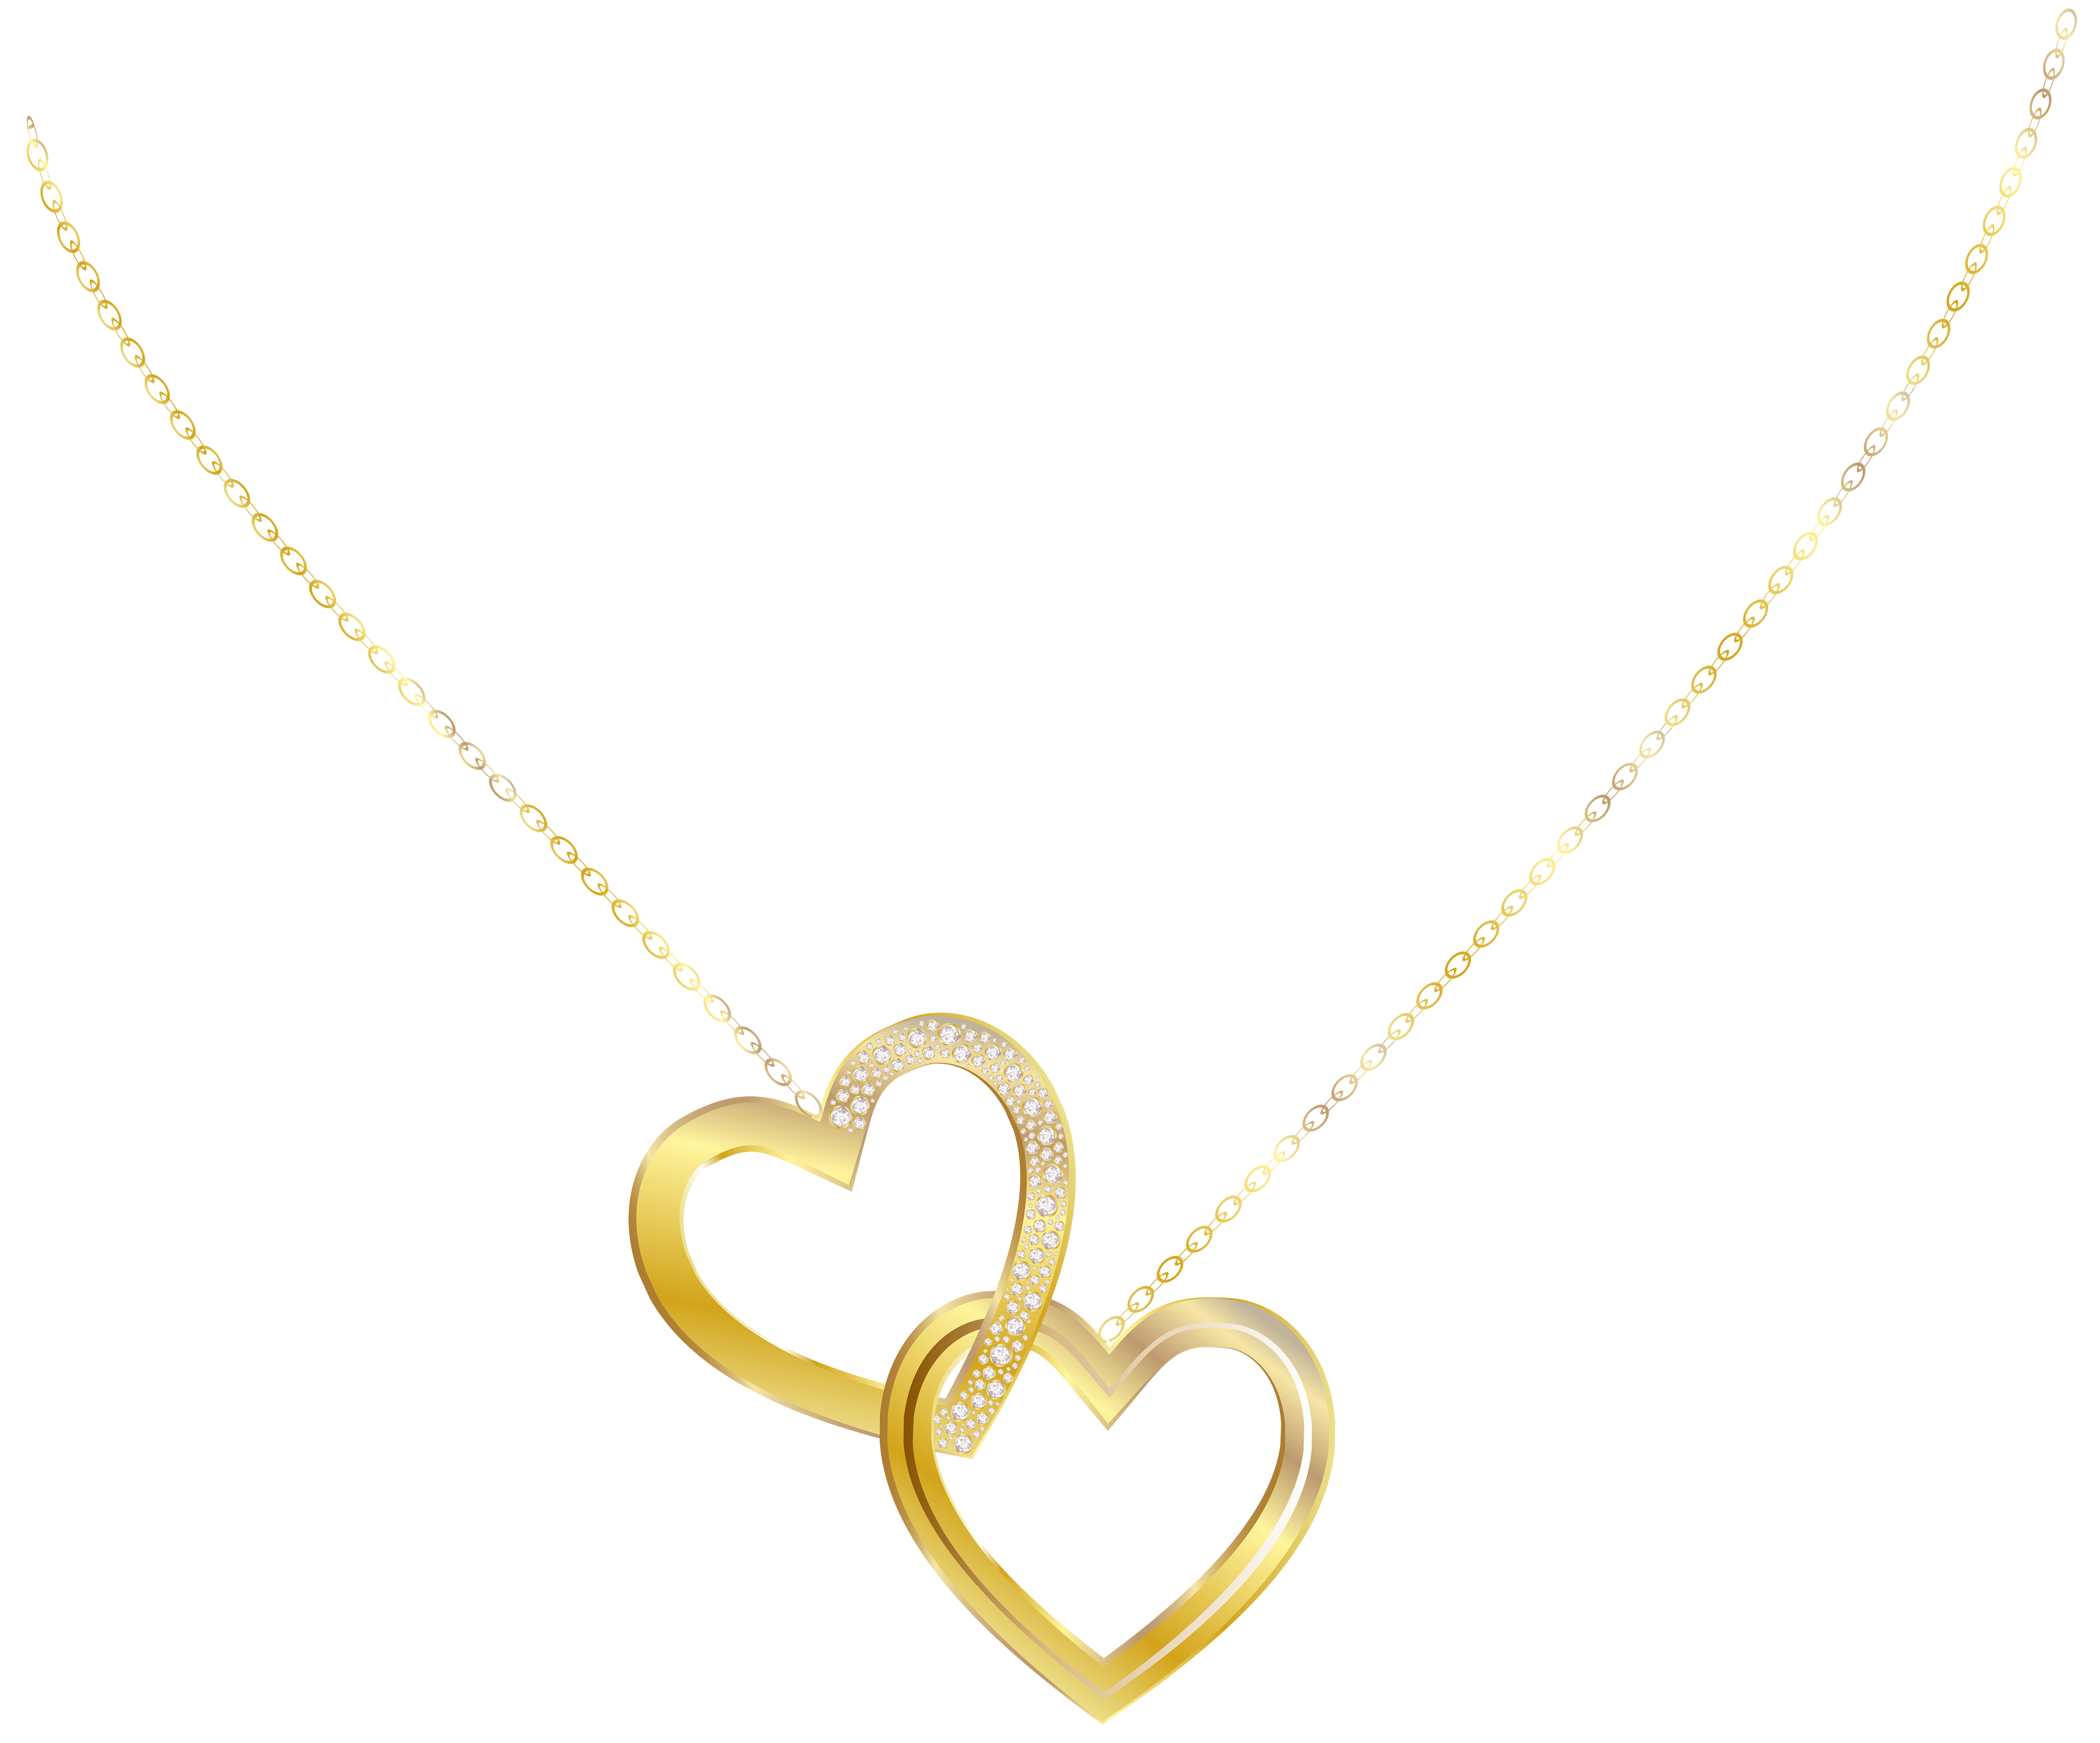 Gold heart necklace png. Jewelry clip graphic black and white